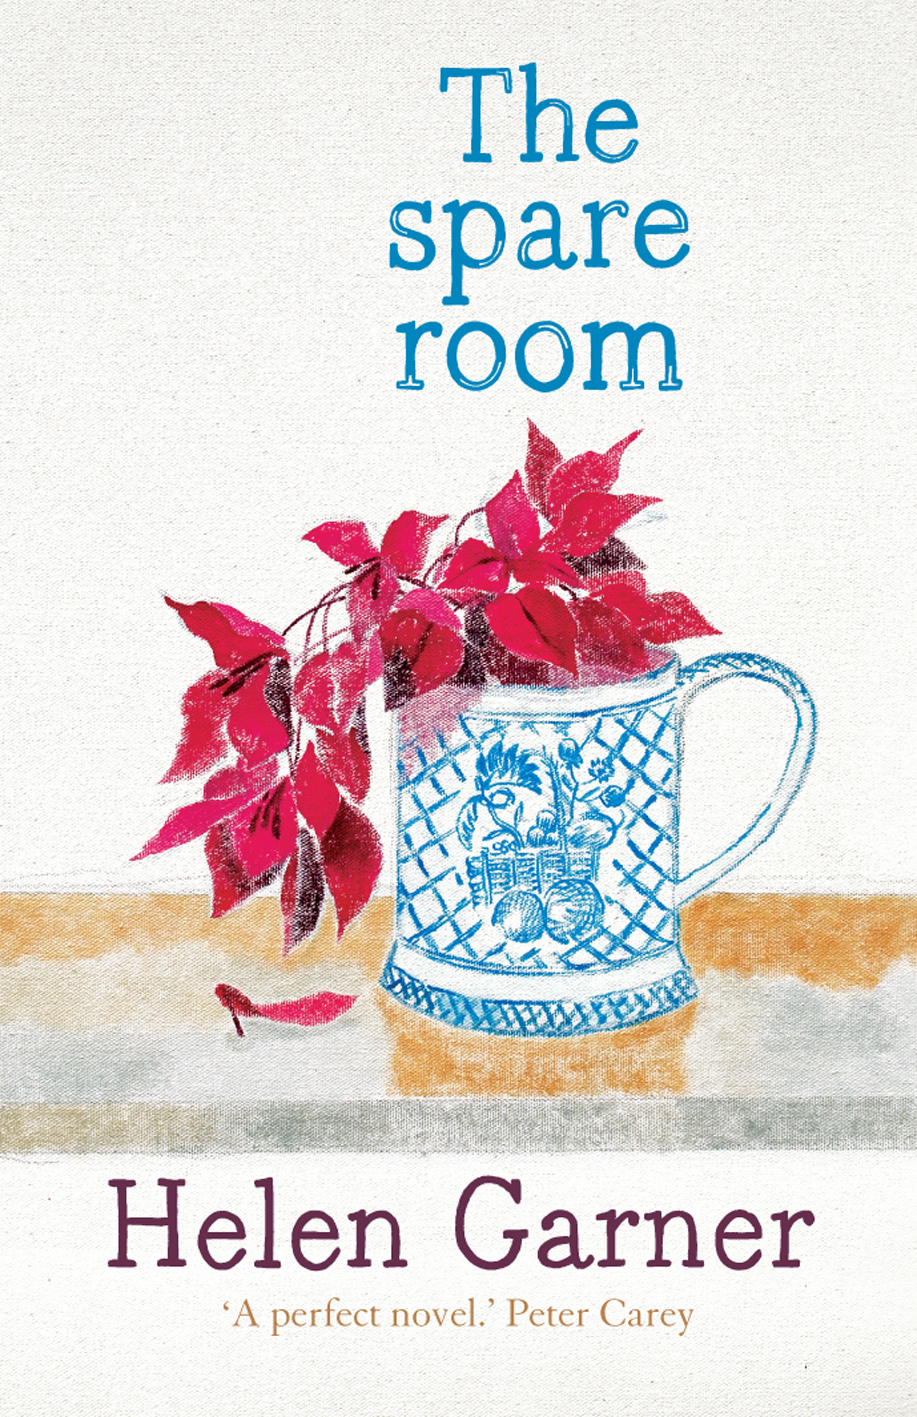 Helen Garner's *The Spare Room* is one of W.H. Chong's favourite covers.